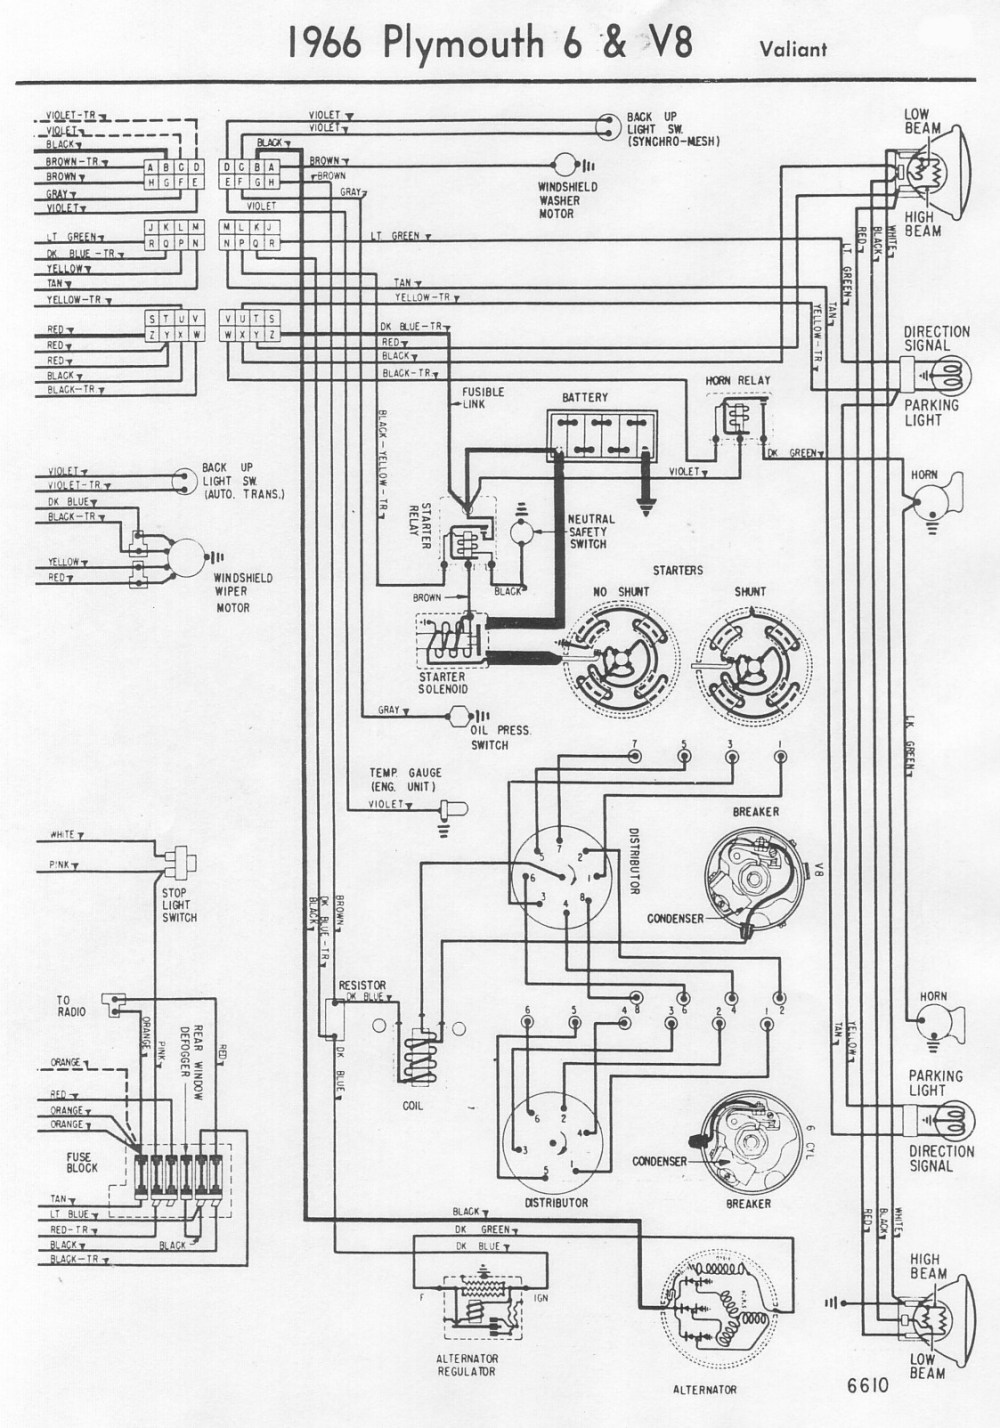 medium resolution of wiring diagram for 1966 fury wiring diagramswiring diagrams for 1966 plymouth wiring diagram used 1966 plymouth